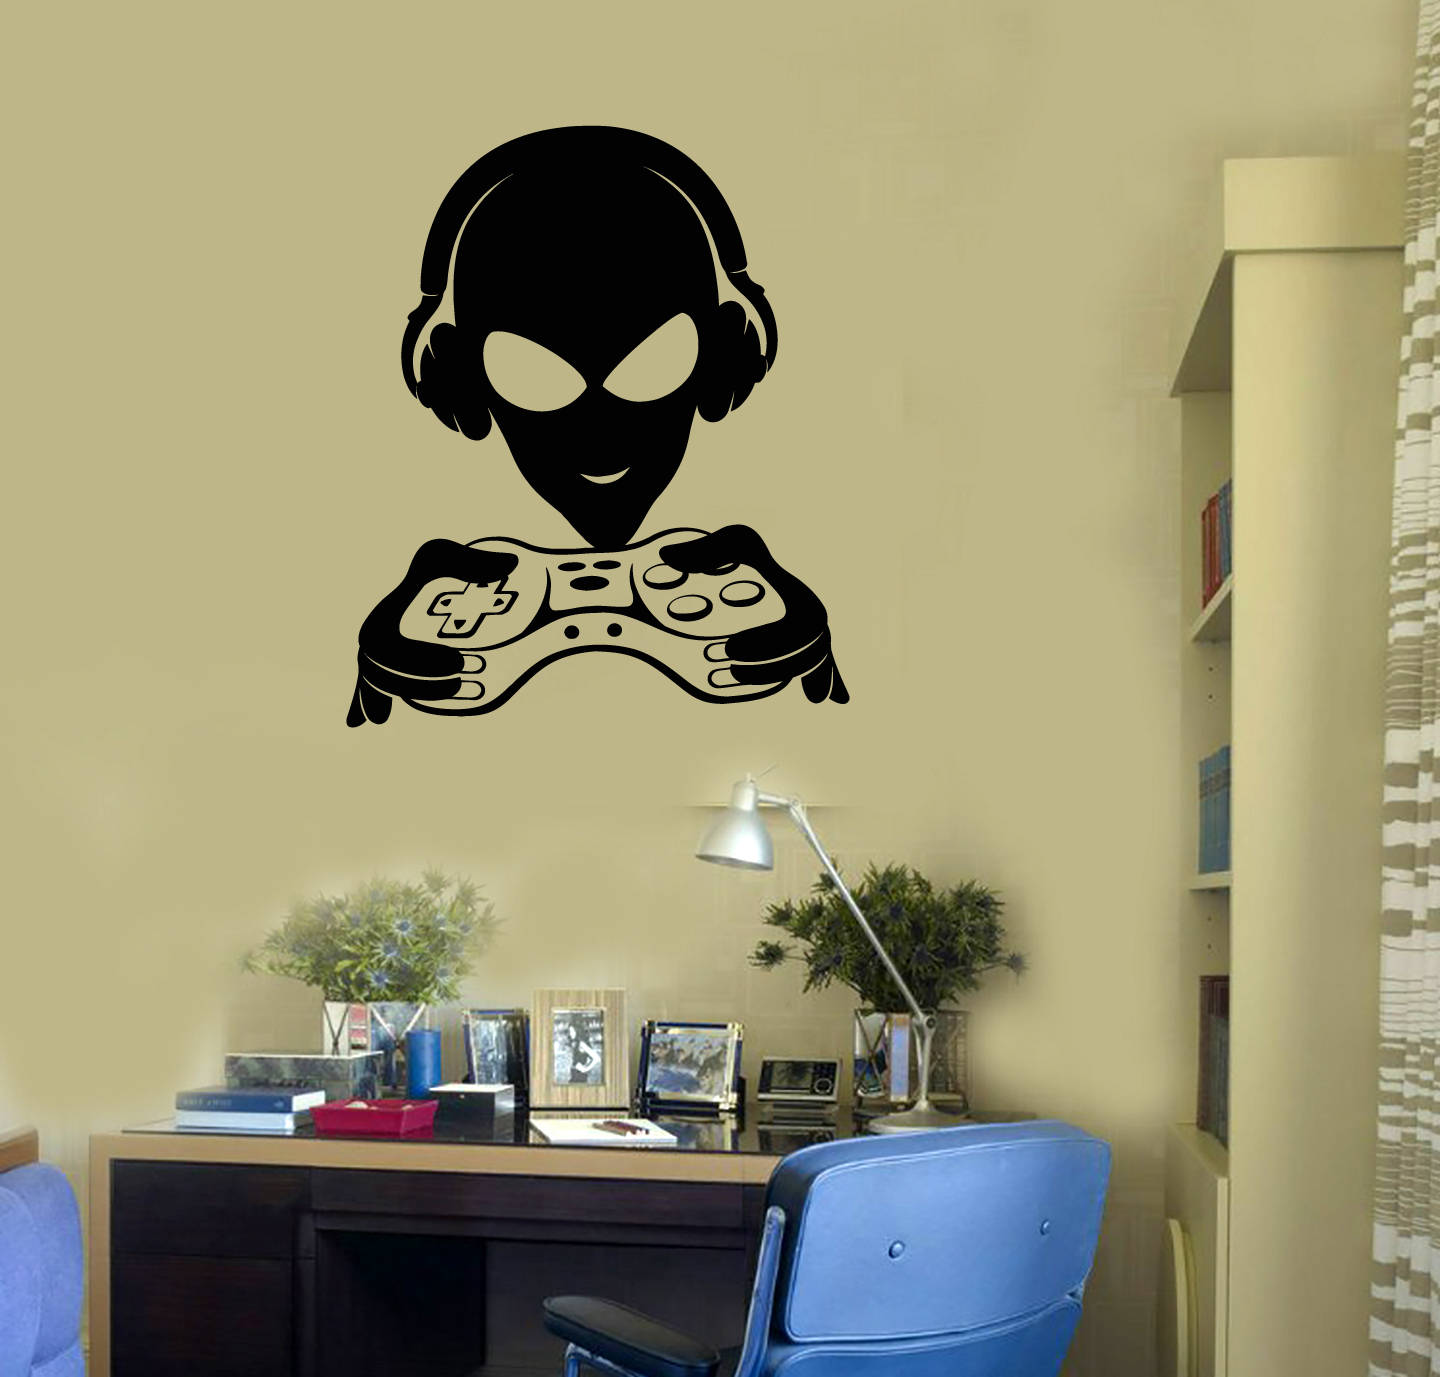 Alien Gamer Vinyl Wall Decal Joystick Video Games Teenage Room | Etsy